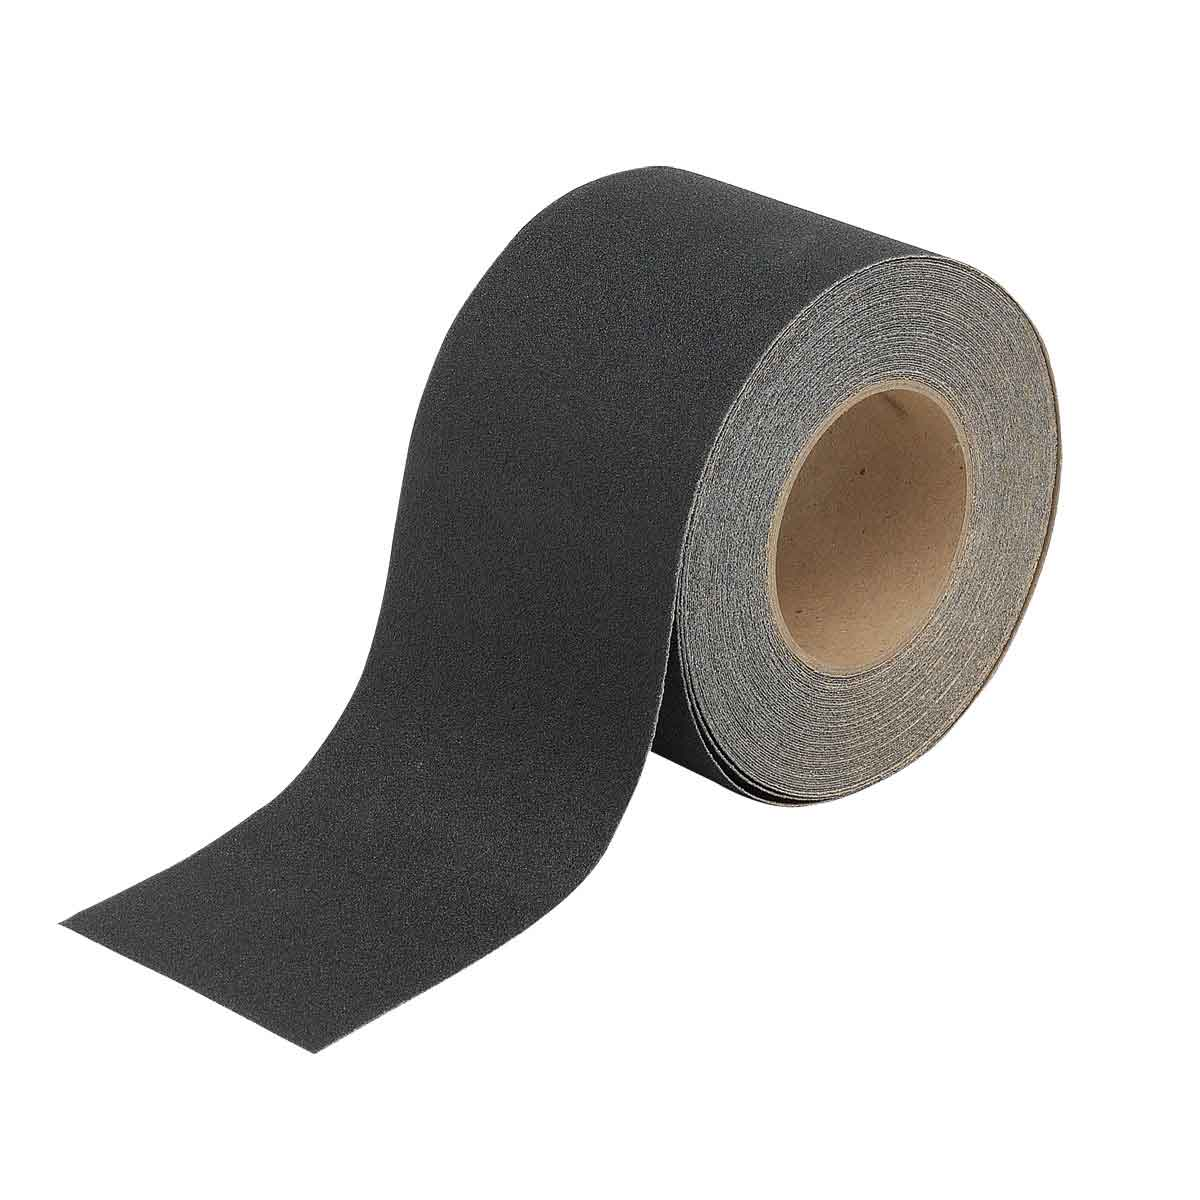 Brady® 78191 Blank Laminated Non-Reflective Roll Mounted Anti-Skid Tape, 60 ft L x 4 in W x 0.026 in THK, B-916 Polyester, Solid Surface Pattern, Gritted Surface